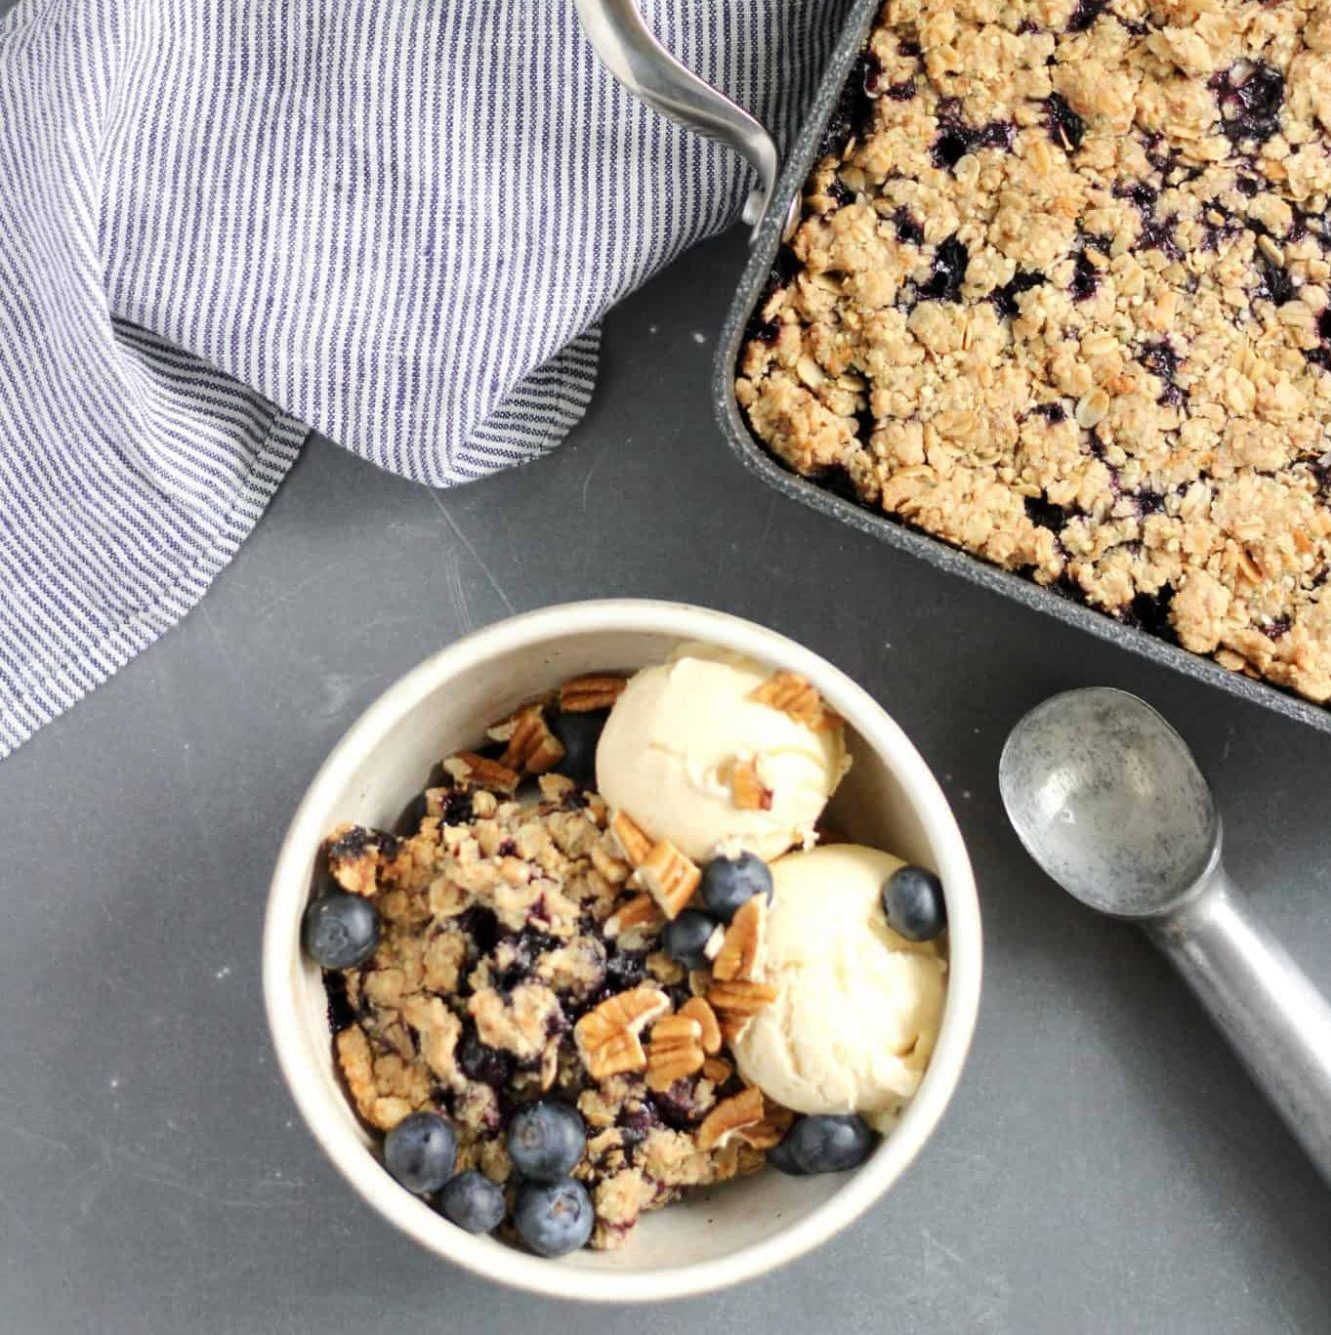 Everyone gets hit with a sweet craving every once in a while, but there's no reason those indulgent treats can't add some nutrition to your day. (BTW, here's exactly how one woman finally curbed her intense sugar cravings.) Like other oat desserts, this recipe features a combination of fiber, plant-based protein, and fats that balance the nutrition to avoid a blood sugar rollercoaster. Using warm baking spices with blueberries boosts the antioxidant content, and a hint of citrus blends all the flavors together into a delicious baked crumble.